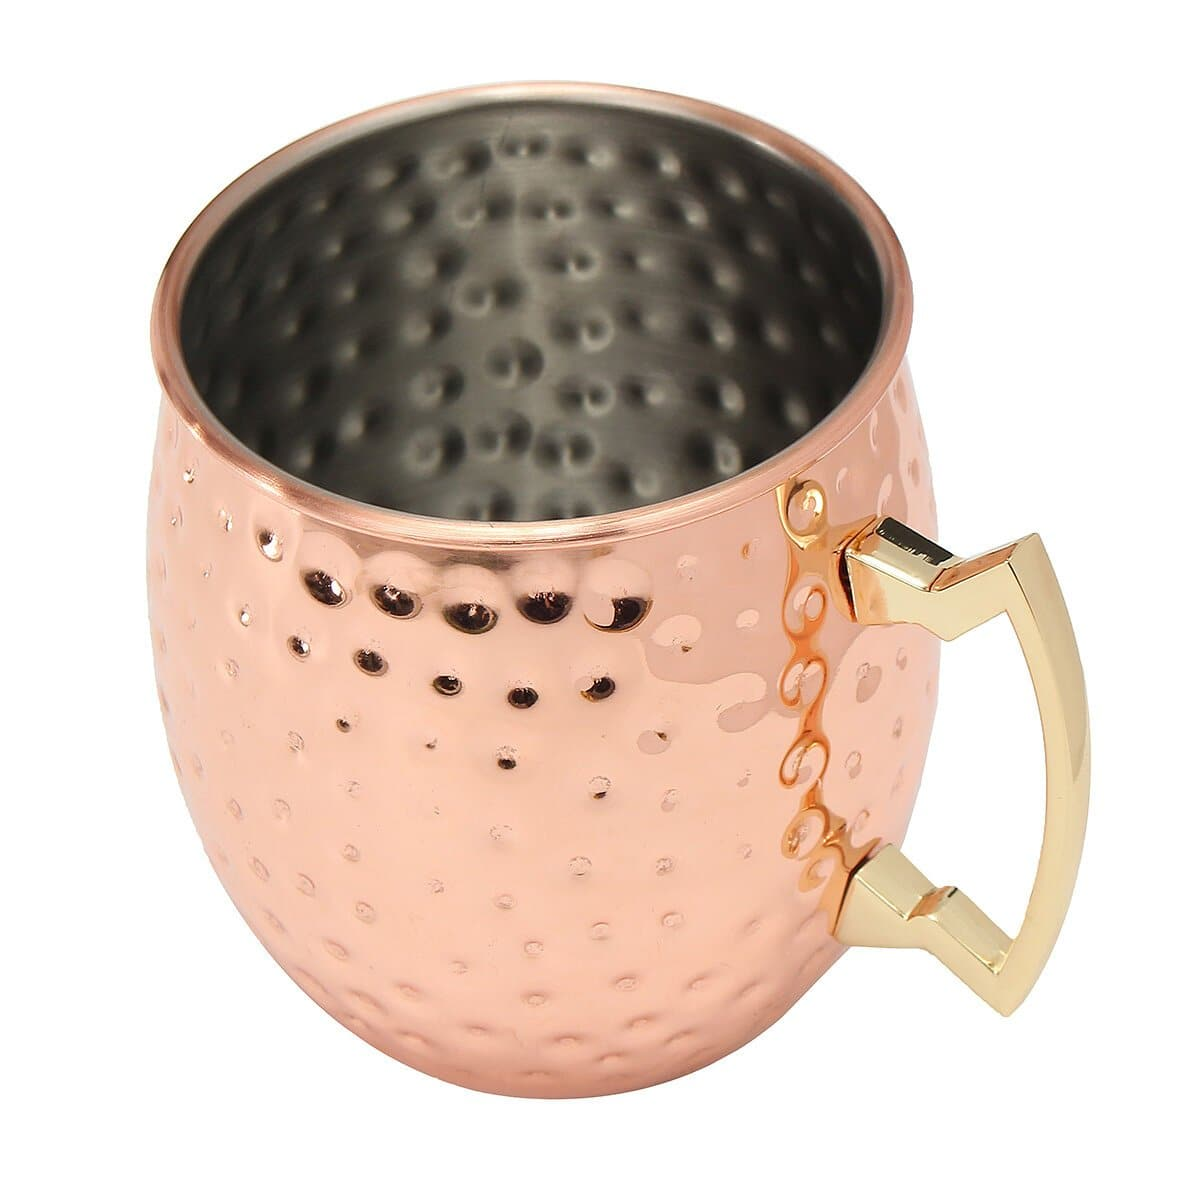 530ml 18oz Coffee Mug Cocktail Copper Cup Cup Drinking Hammered Copper Brass Steel Cup - FLJ CORPORATIONS